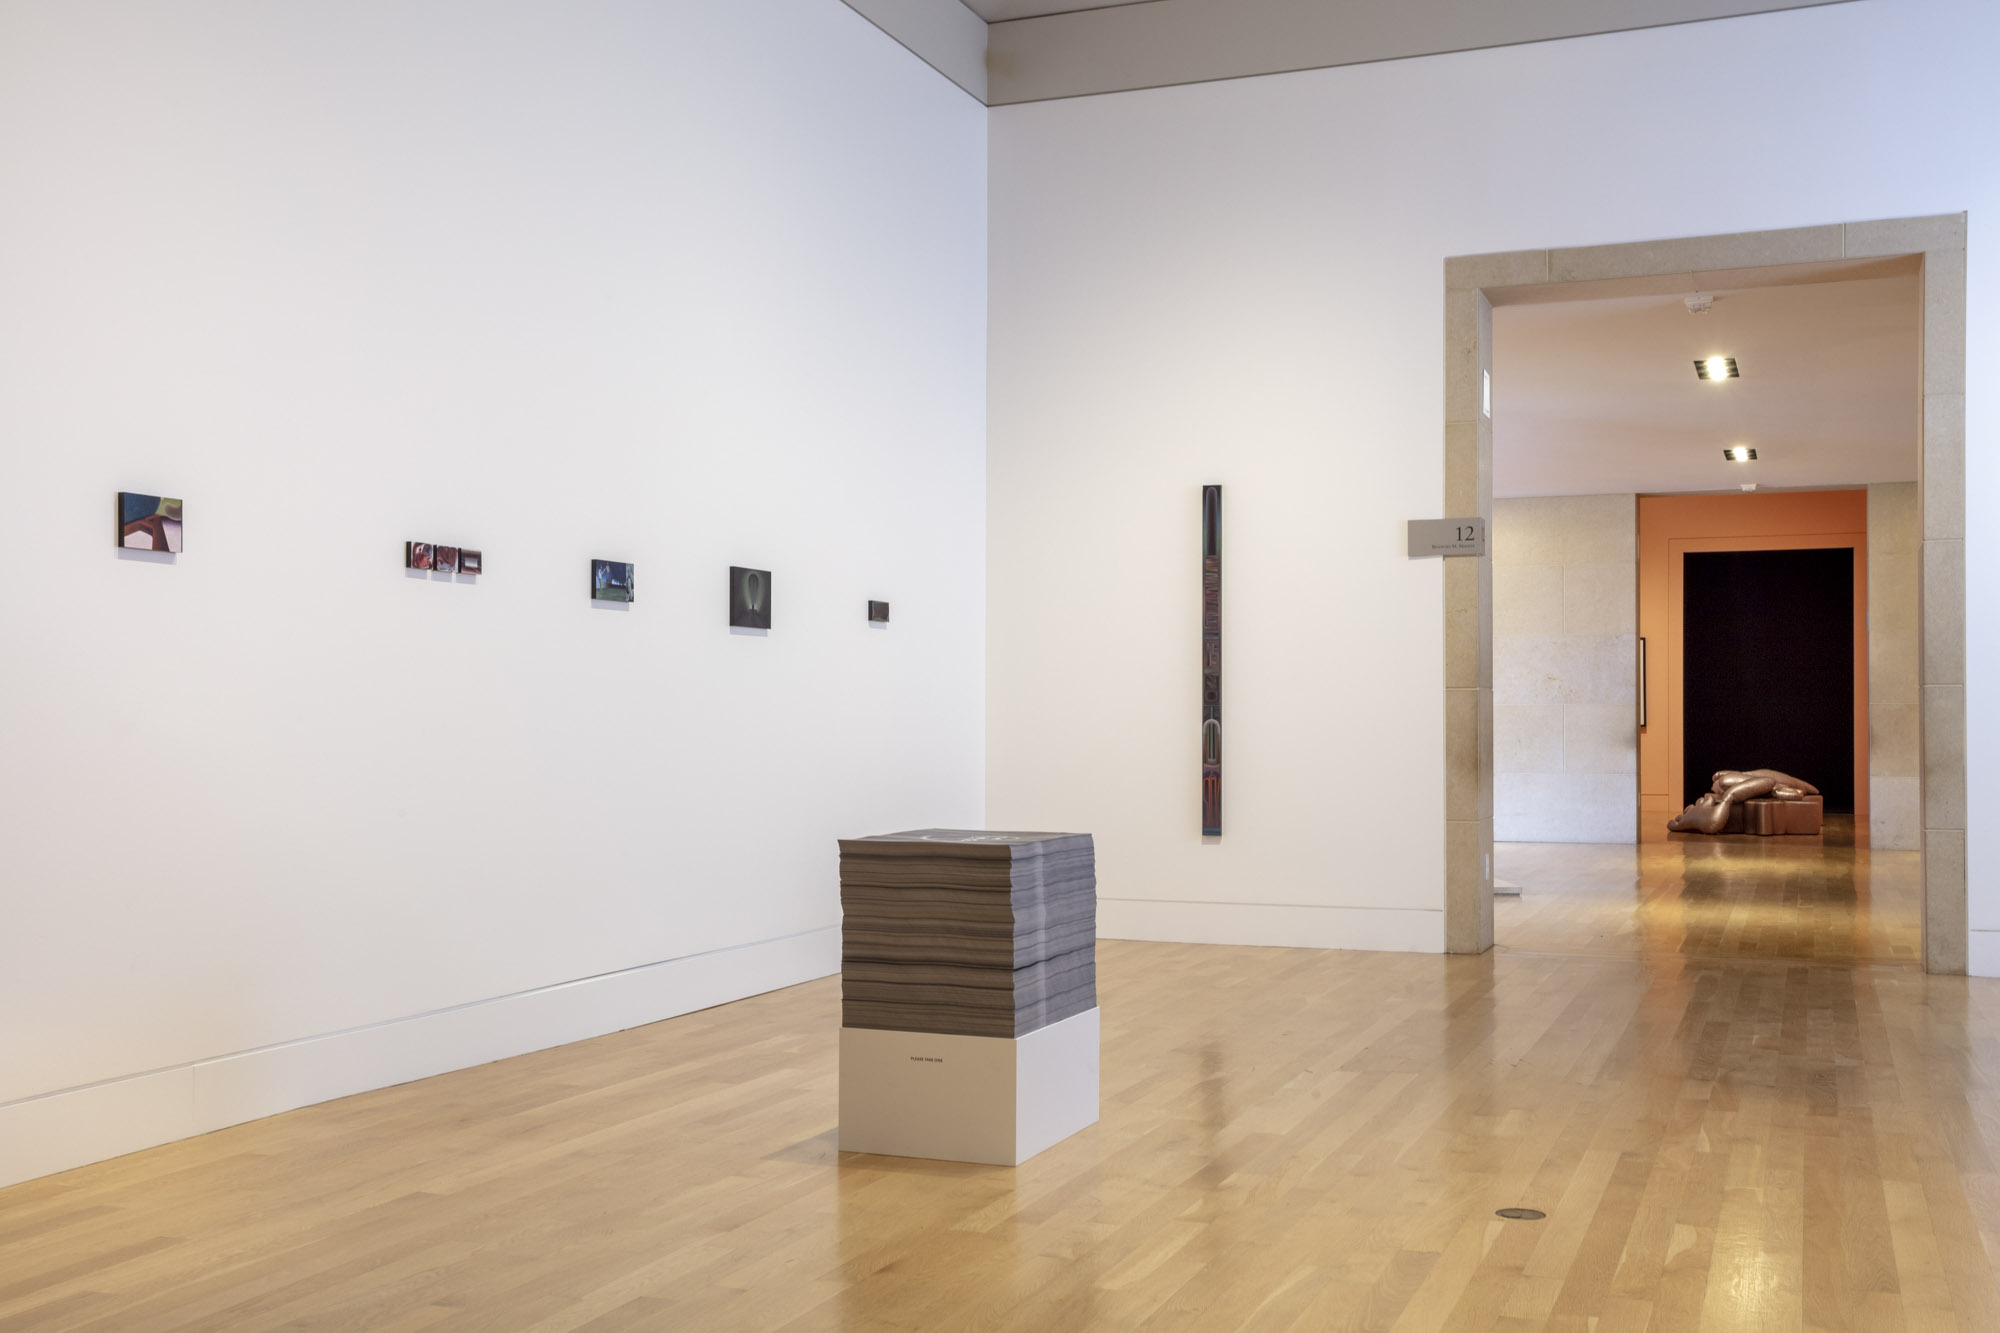 """An installation view of Hedi el Kholti's work at """"Made in L.A. 2020: a version"""" at The Huntington Library, Art Museum, and Botanical Gardens, San Marino. 